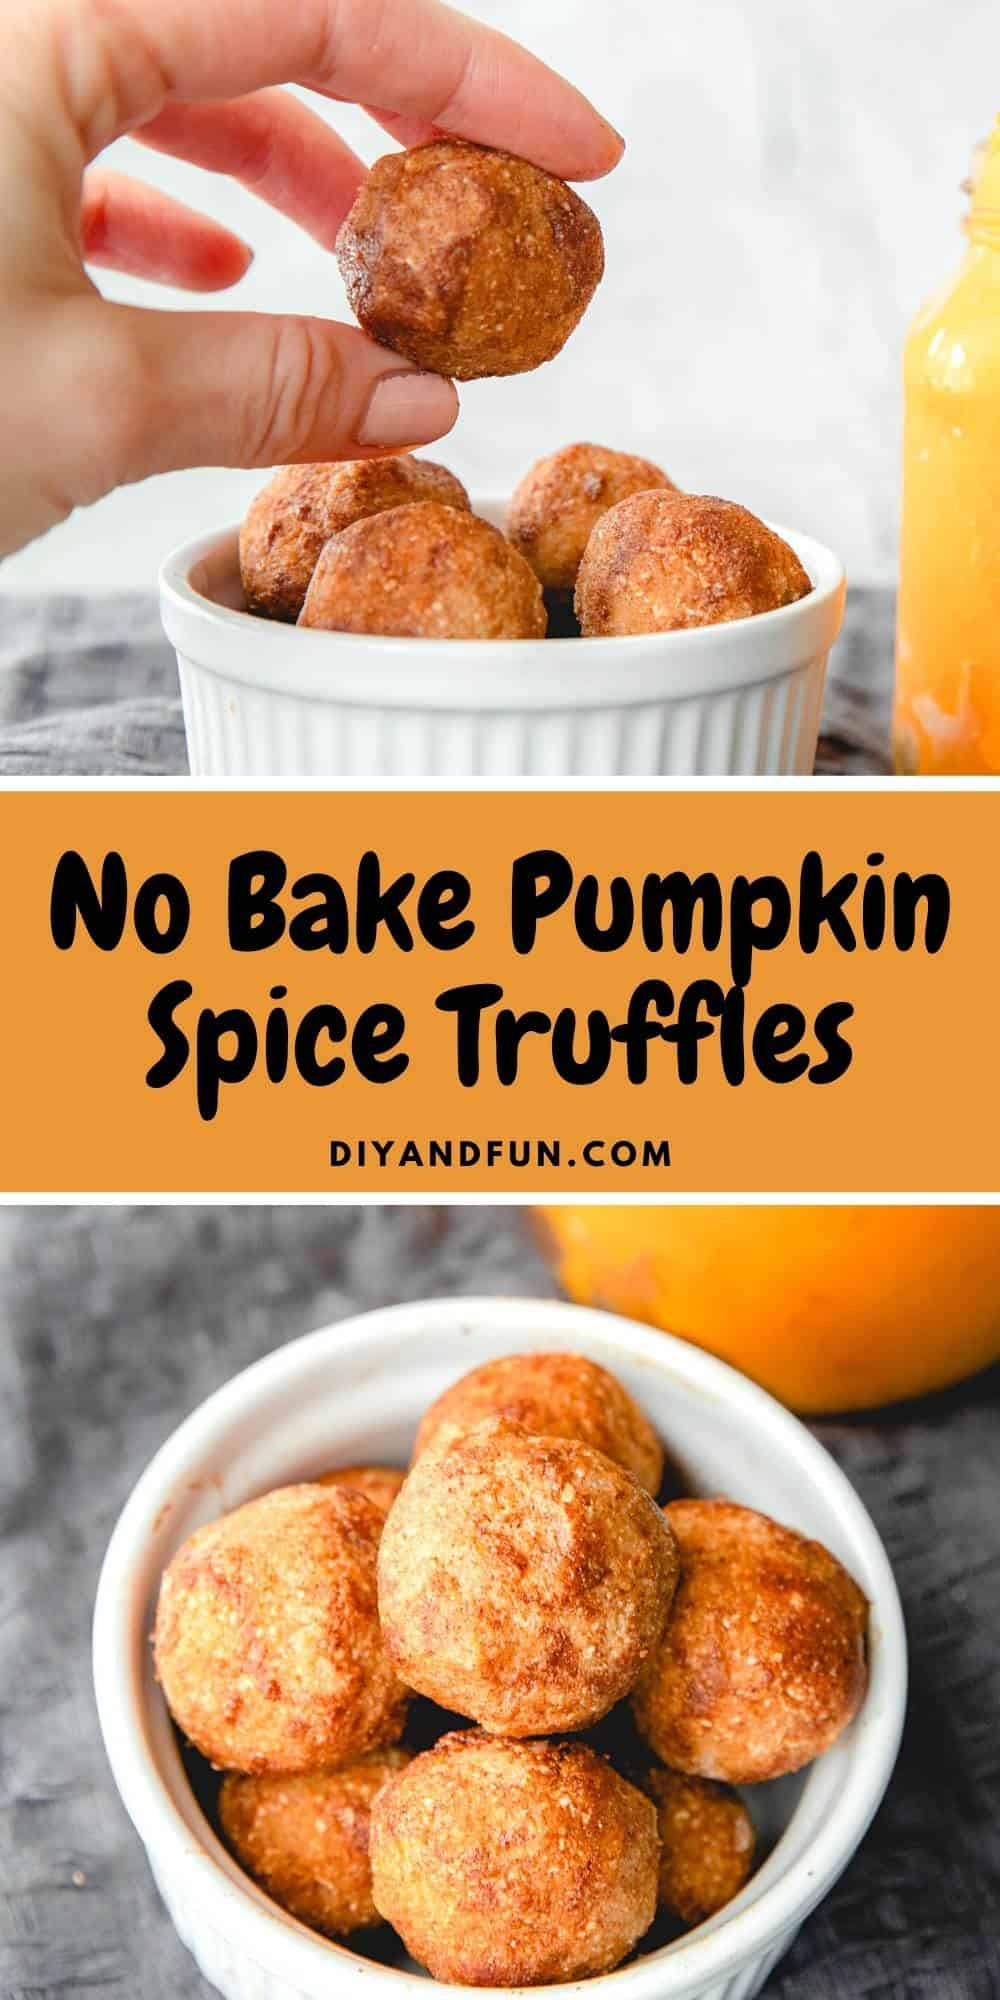 No Bake Pumpkin Spice Truffles, a simple recipe for healthy pumpkin treats that can be made in 15 minutes. Vegan and Gluten Free.